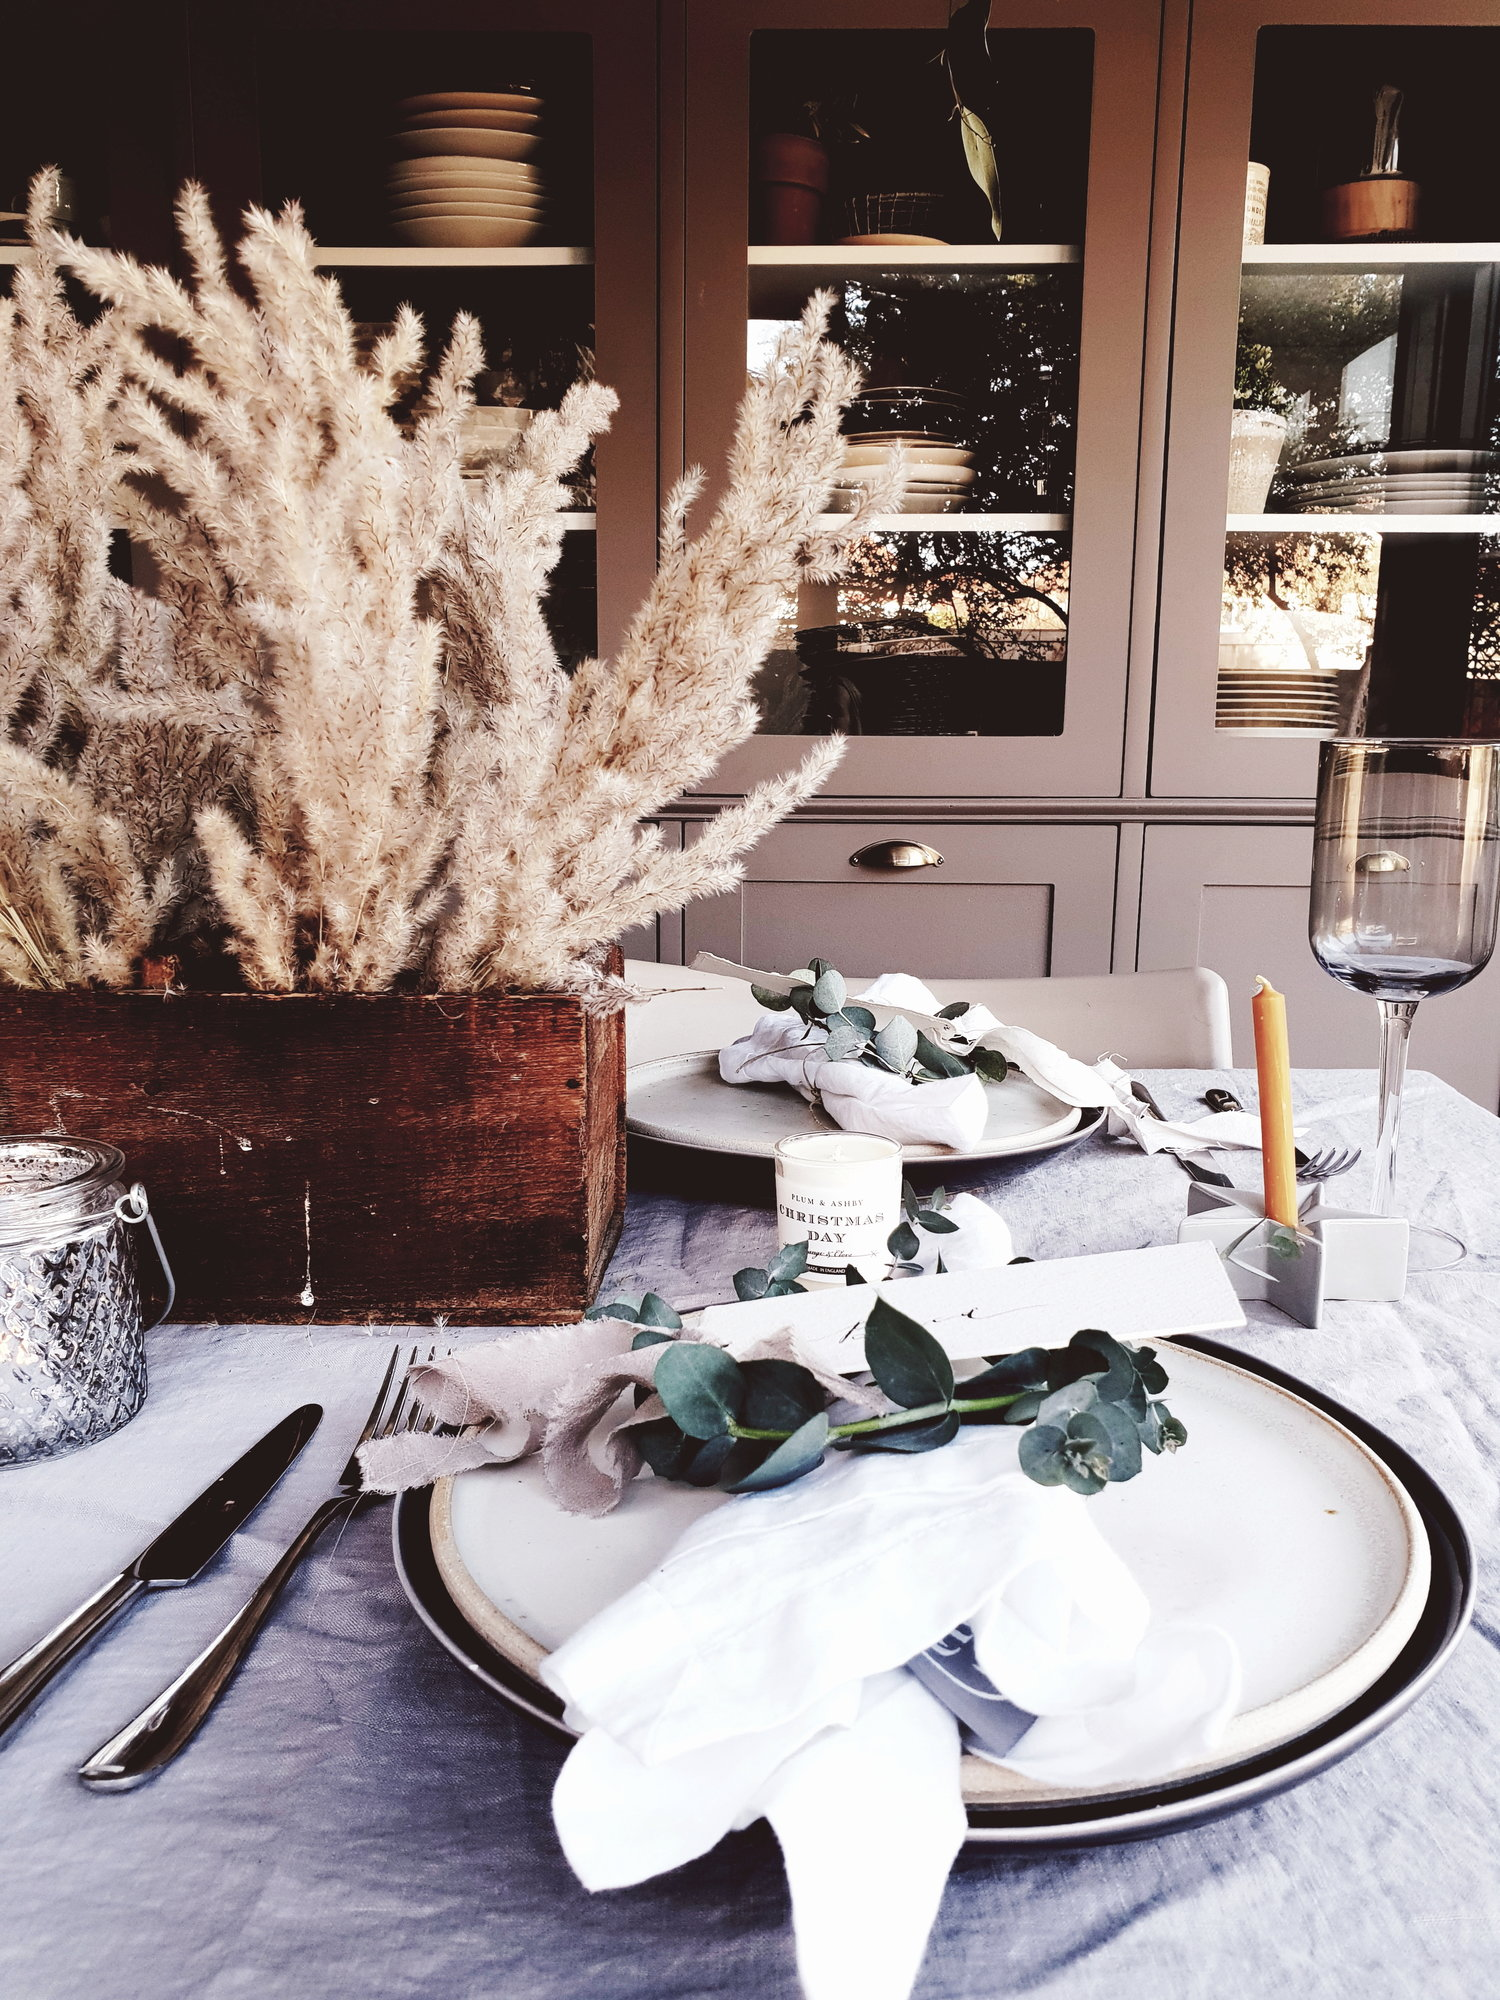 The wooden box adds warmth and texture to the Christmas table